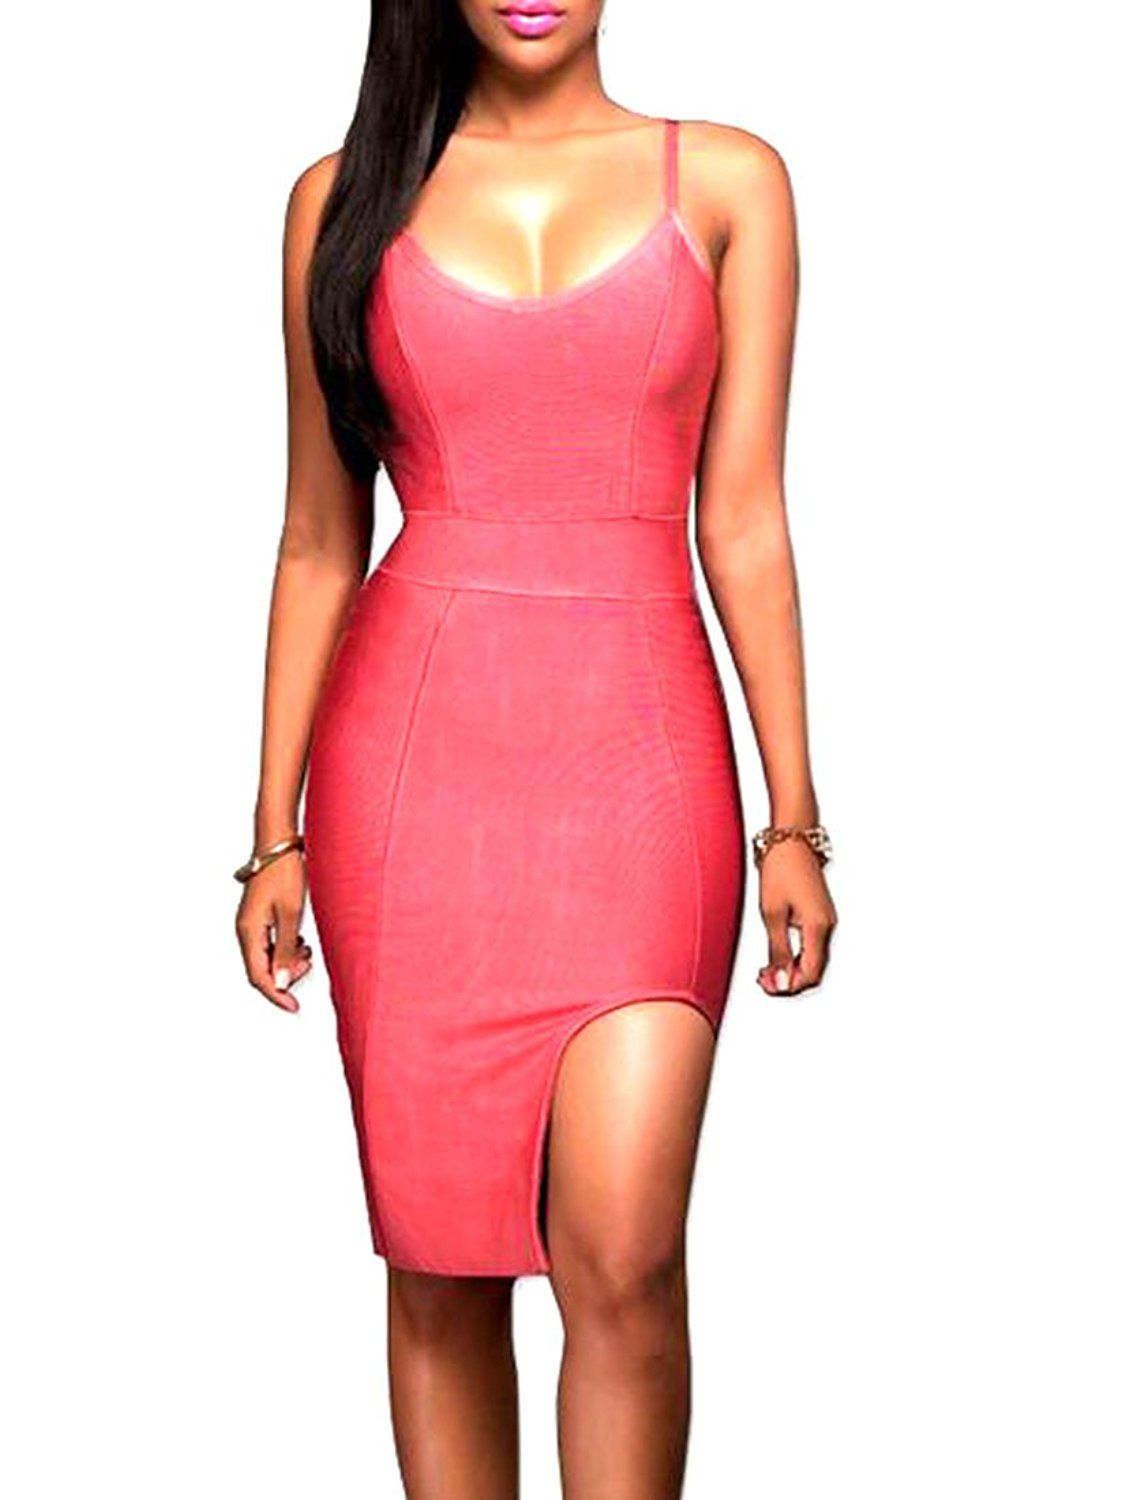 ARRIVE GUIDE Women's Scoopneck Solid Irregular Straps Bodycon Club Dress